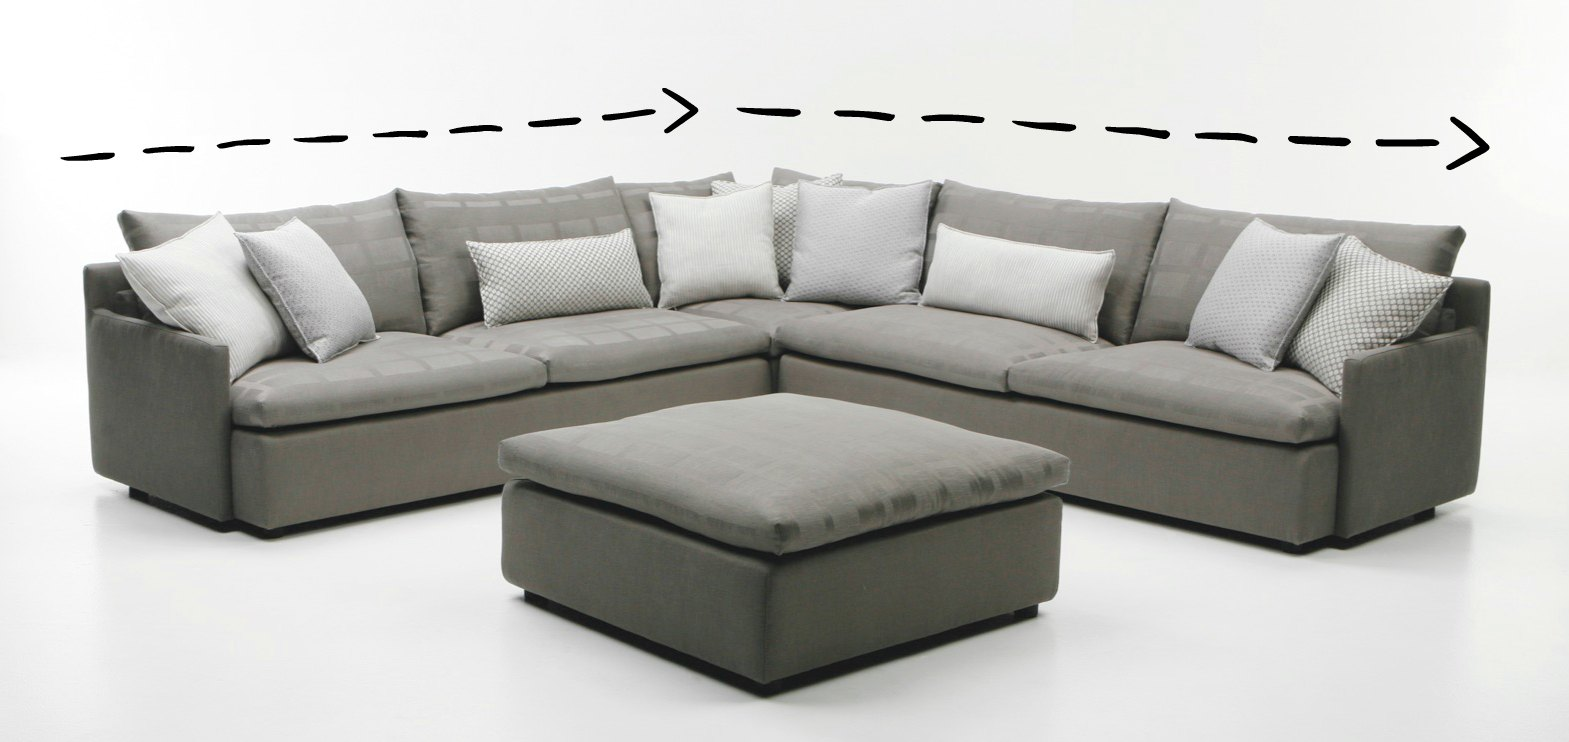 ektorp tidbits or the spring tidbitstwine ikea of french sofa twine farmhouse honest familly room sectional review an